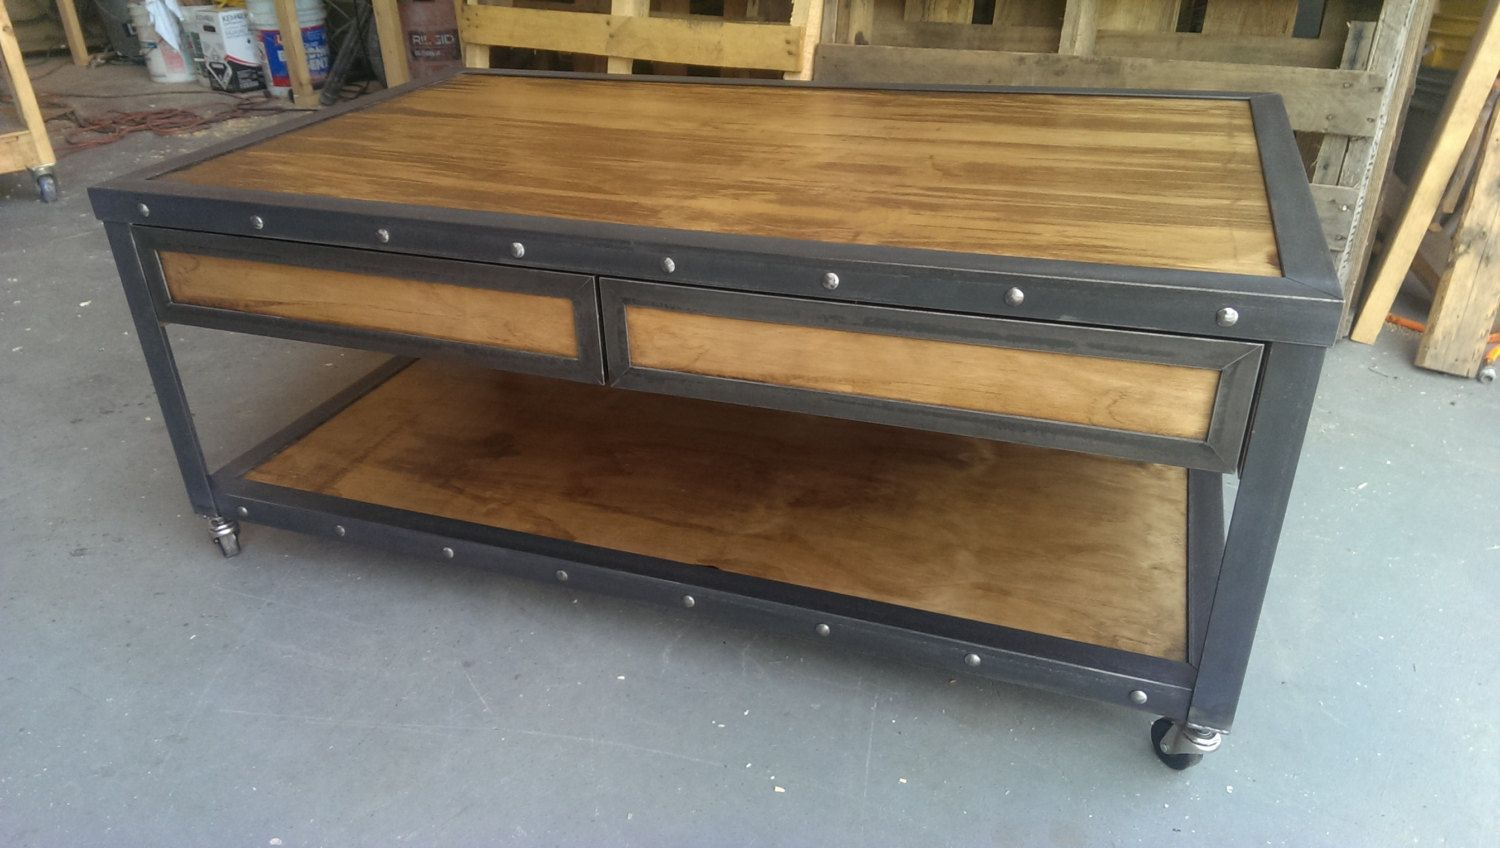 industrial furniture style. Industrial Coffee Table With Drawers #019 \u2022 Style Furniture By Evolution Co. L